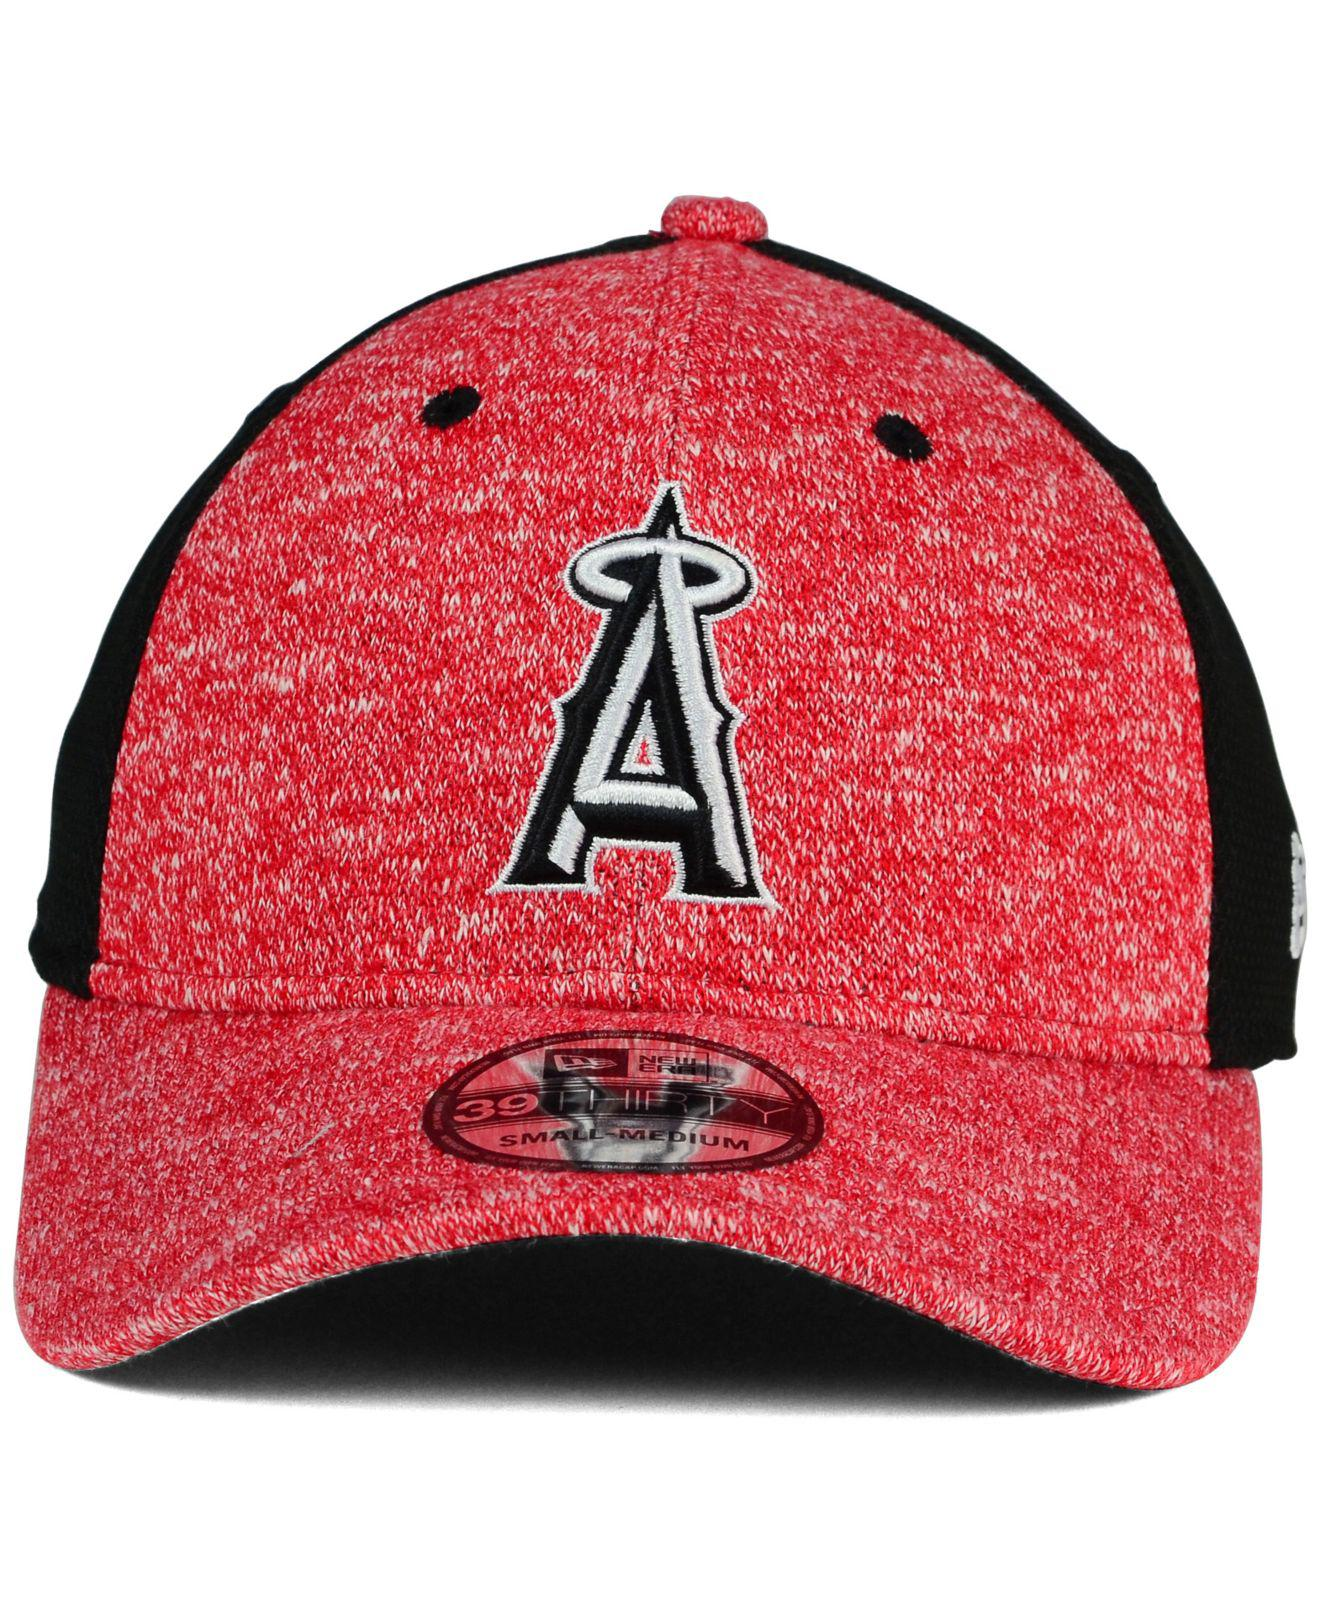 497782b585c458 ... low price lyst ktz los angeles angels of anahiem team color tech fuse  39thirty cap in